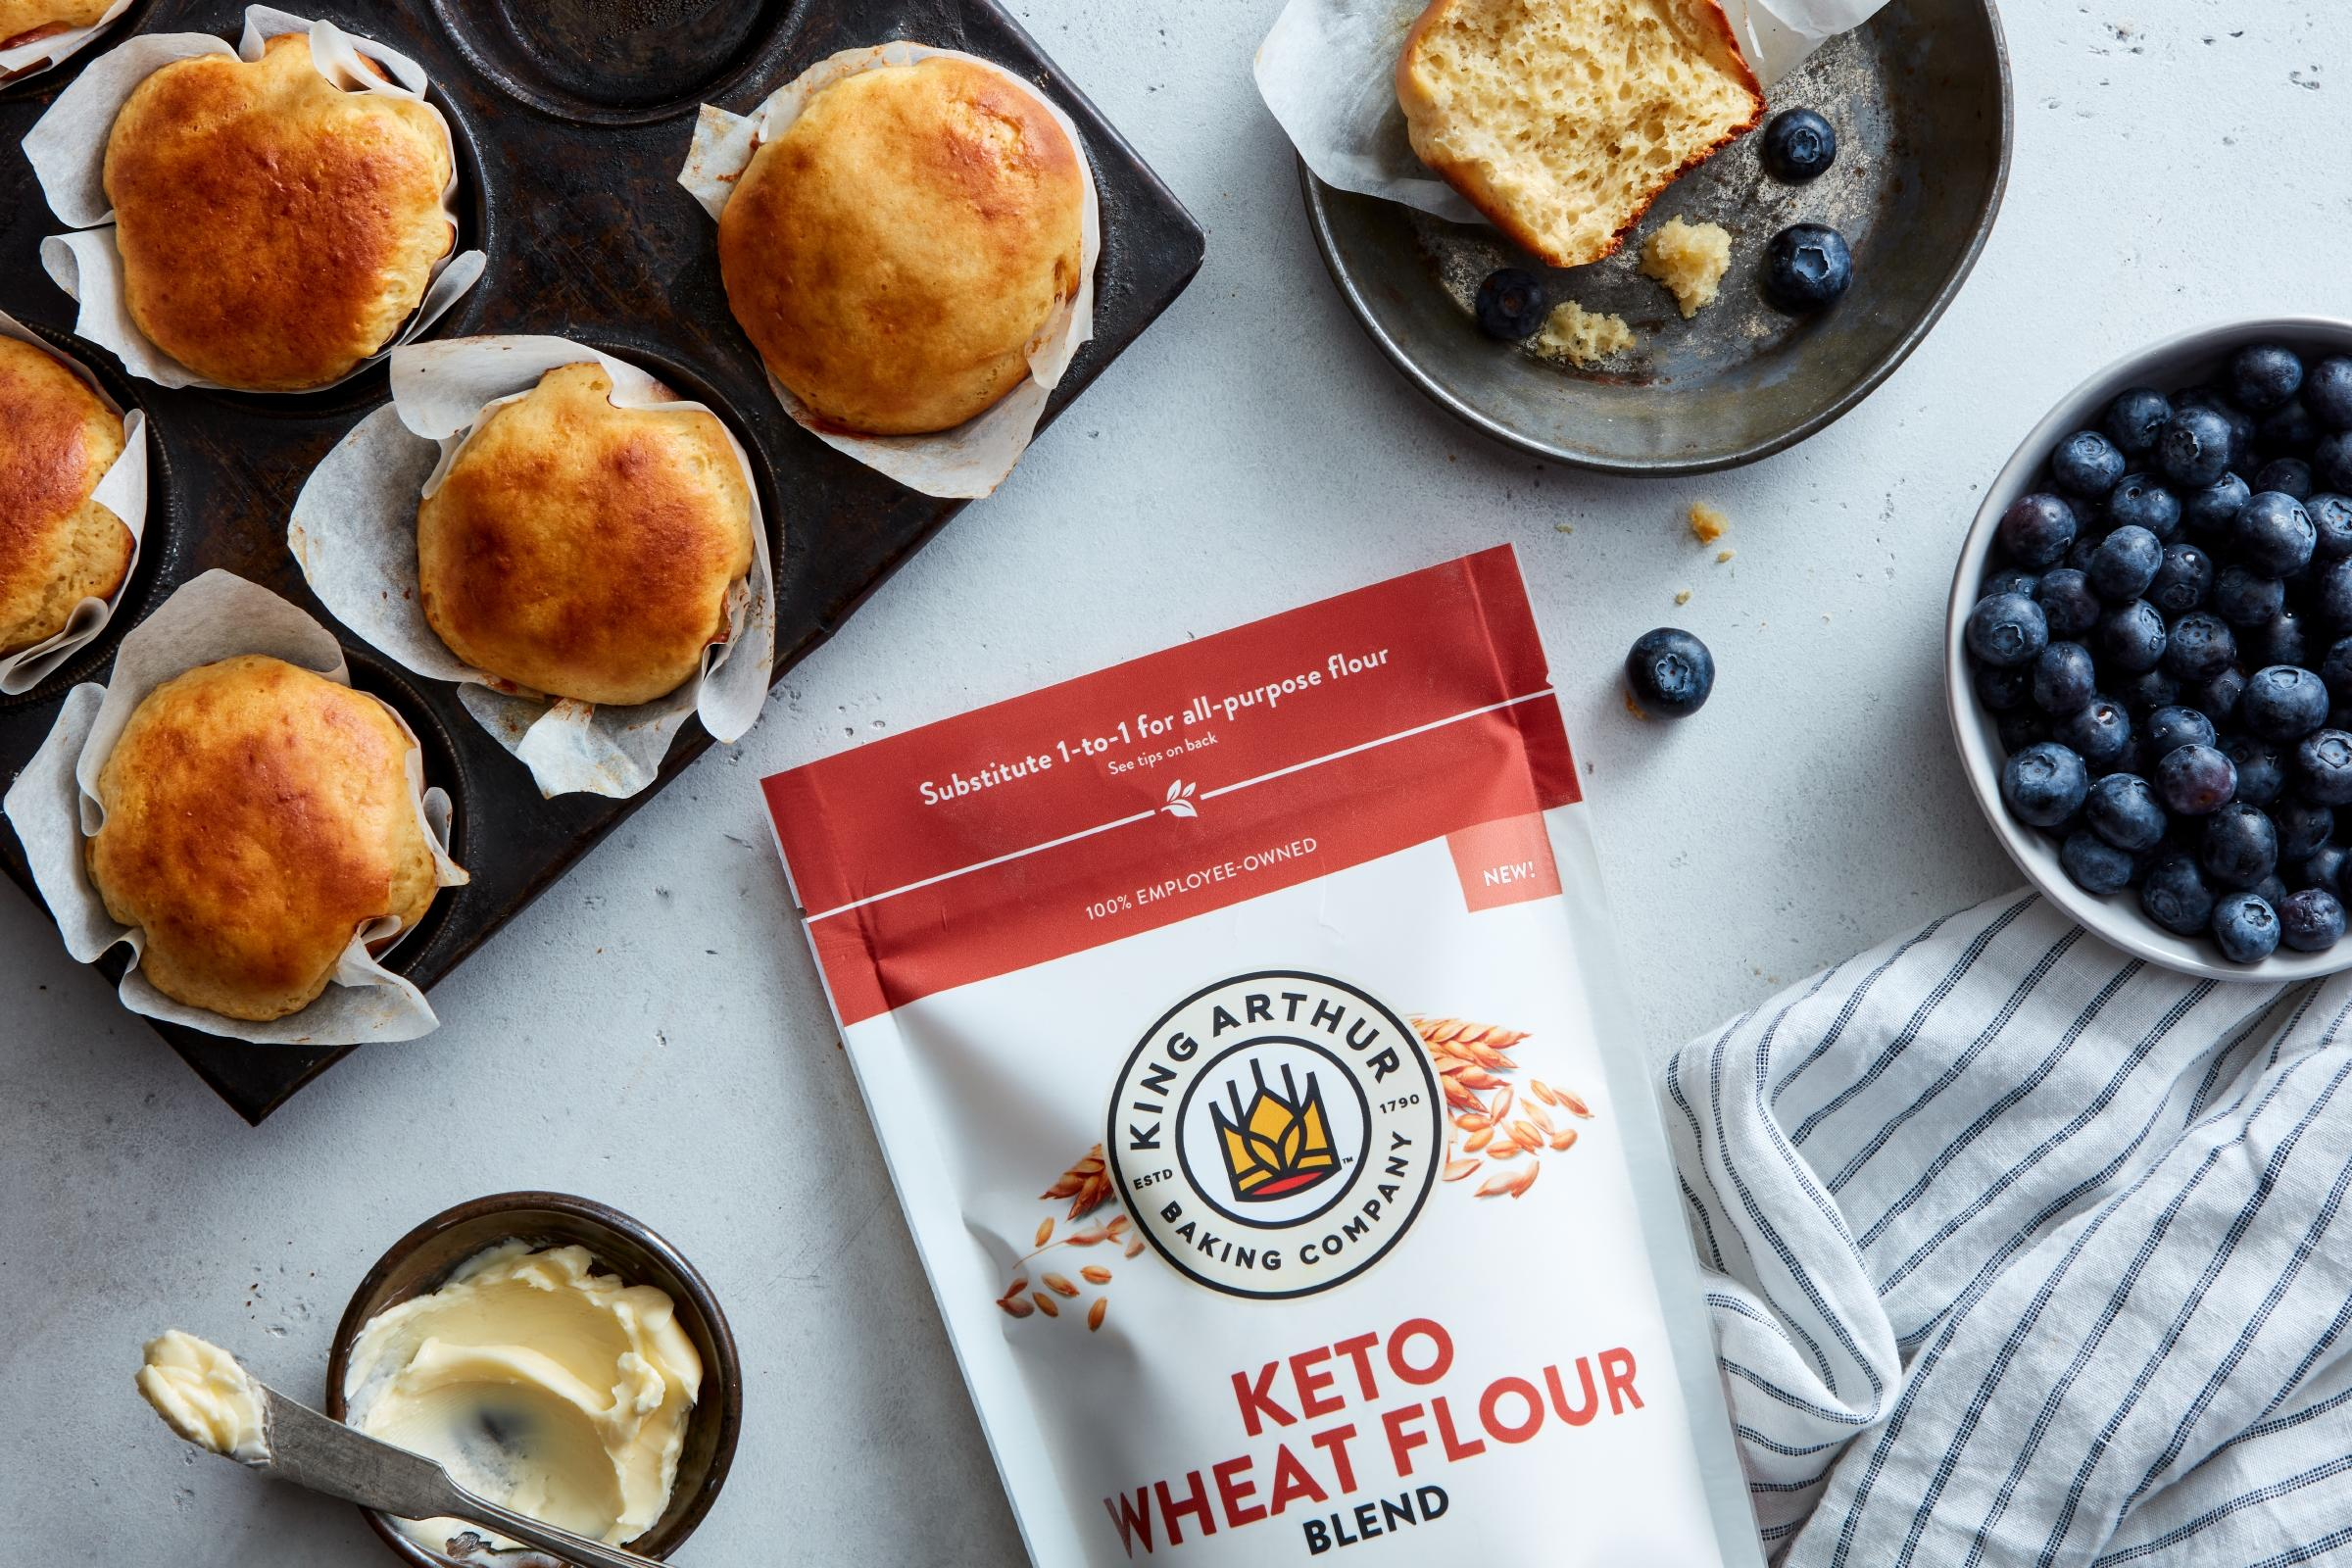 How King Arthur Baking Company has pivoted to meet the needs of homebound bakers